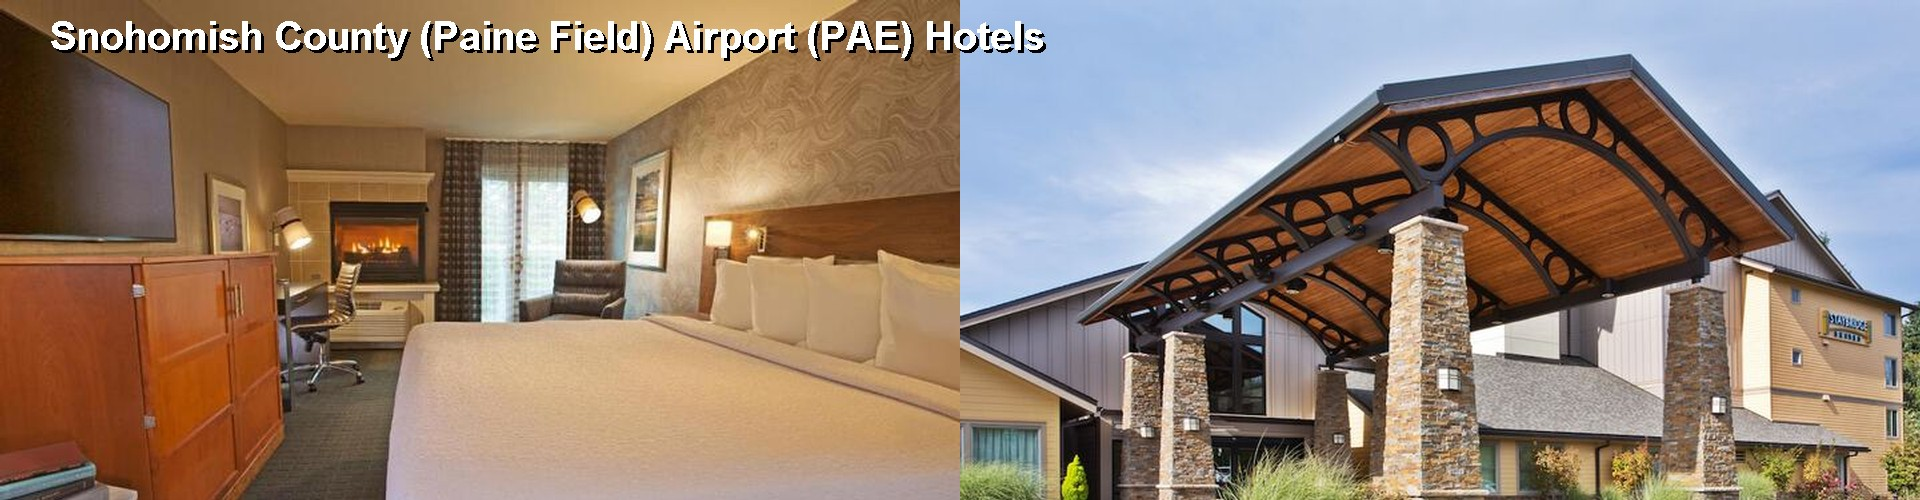 5 Best Hotels Near Snohomish County Paine Field Airport Pae